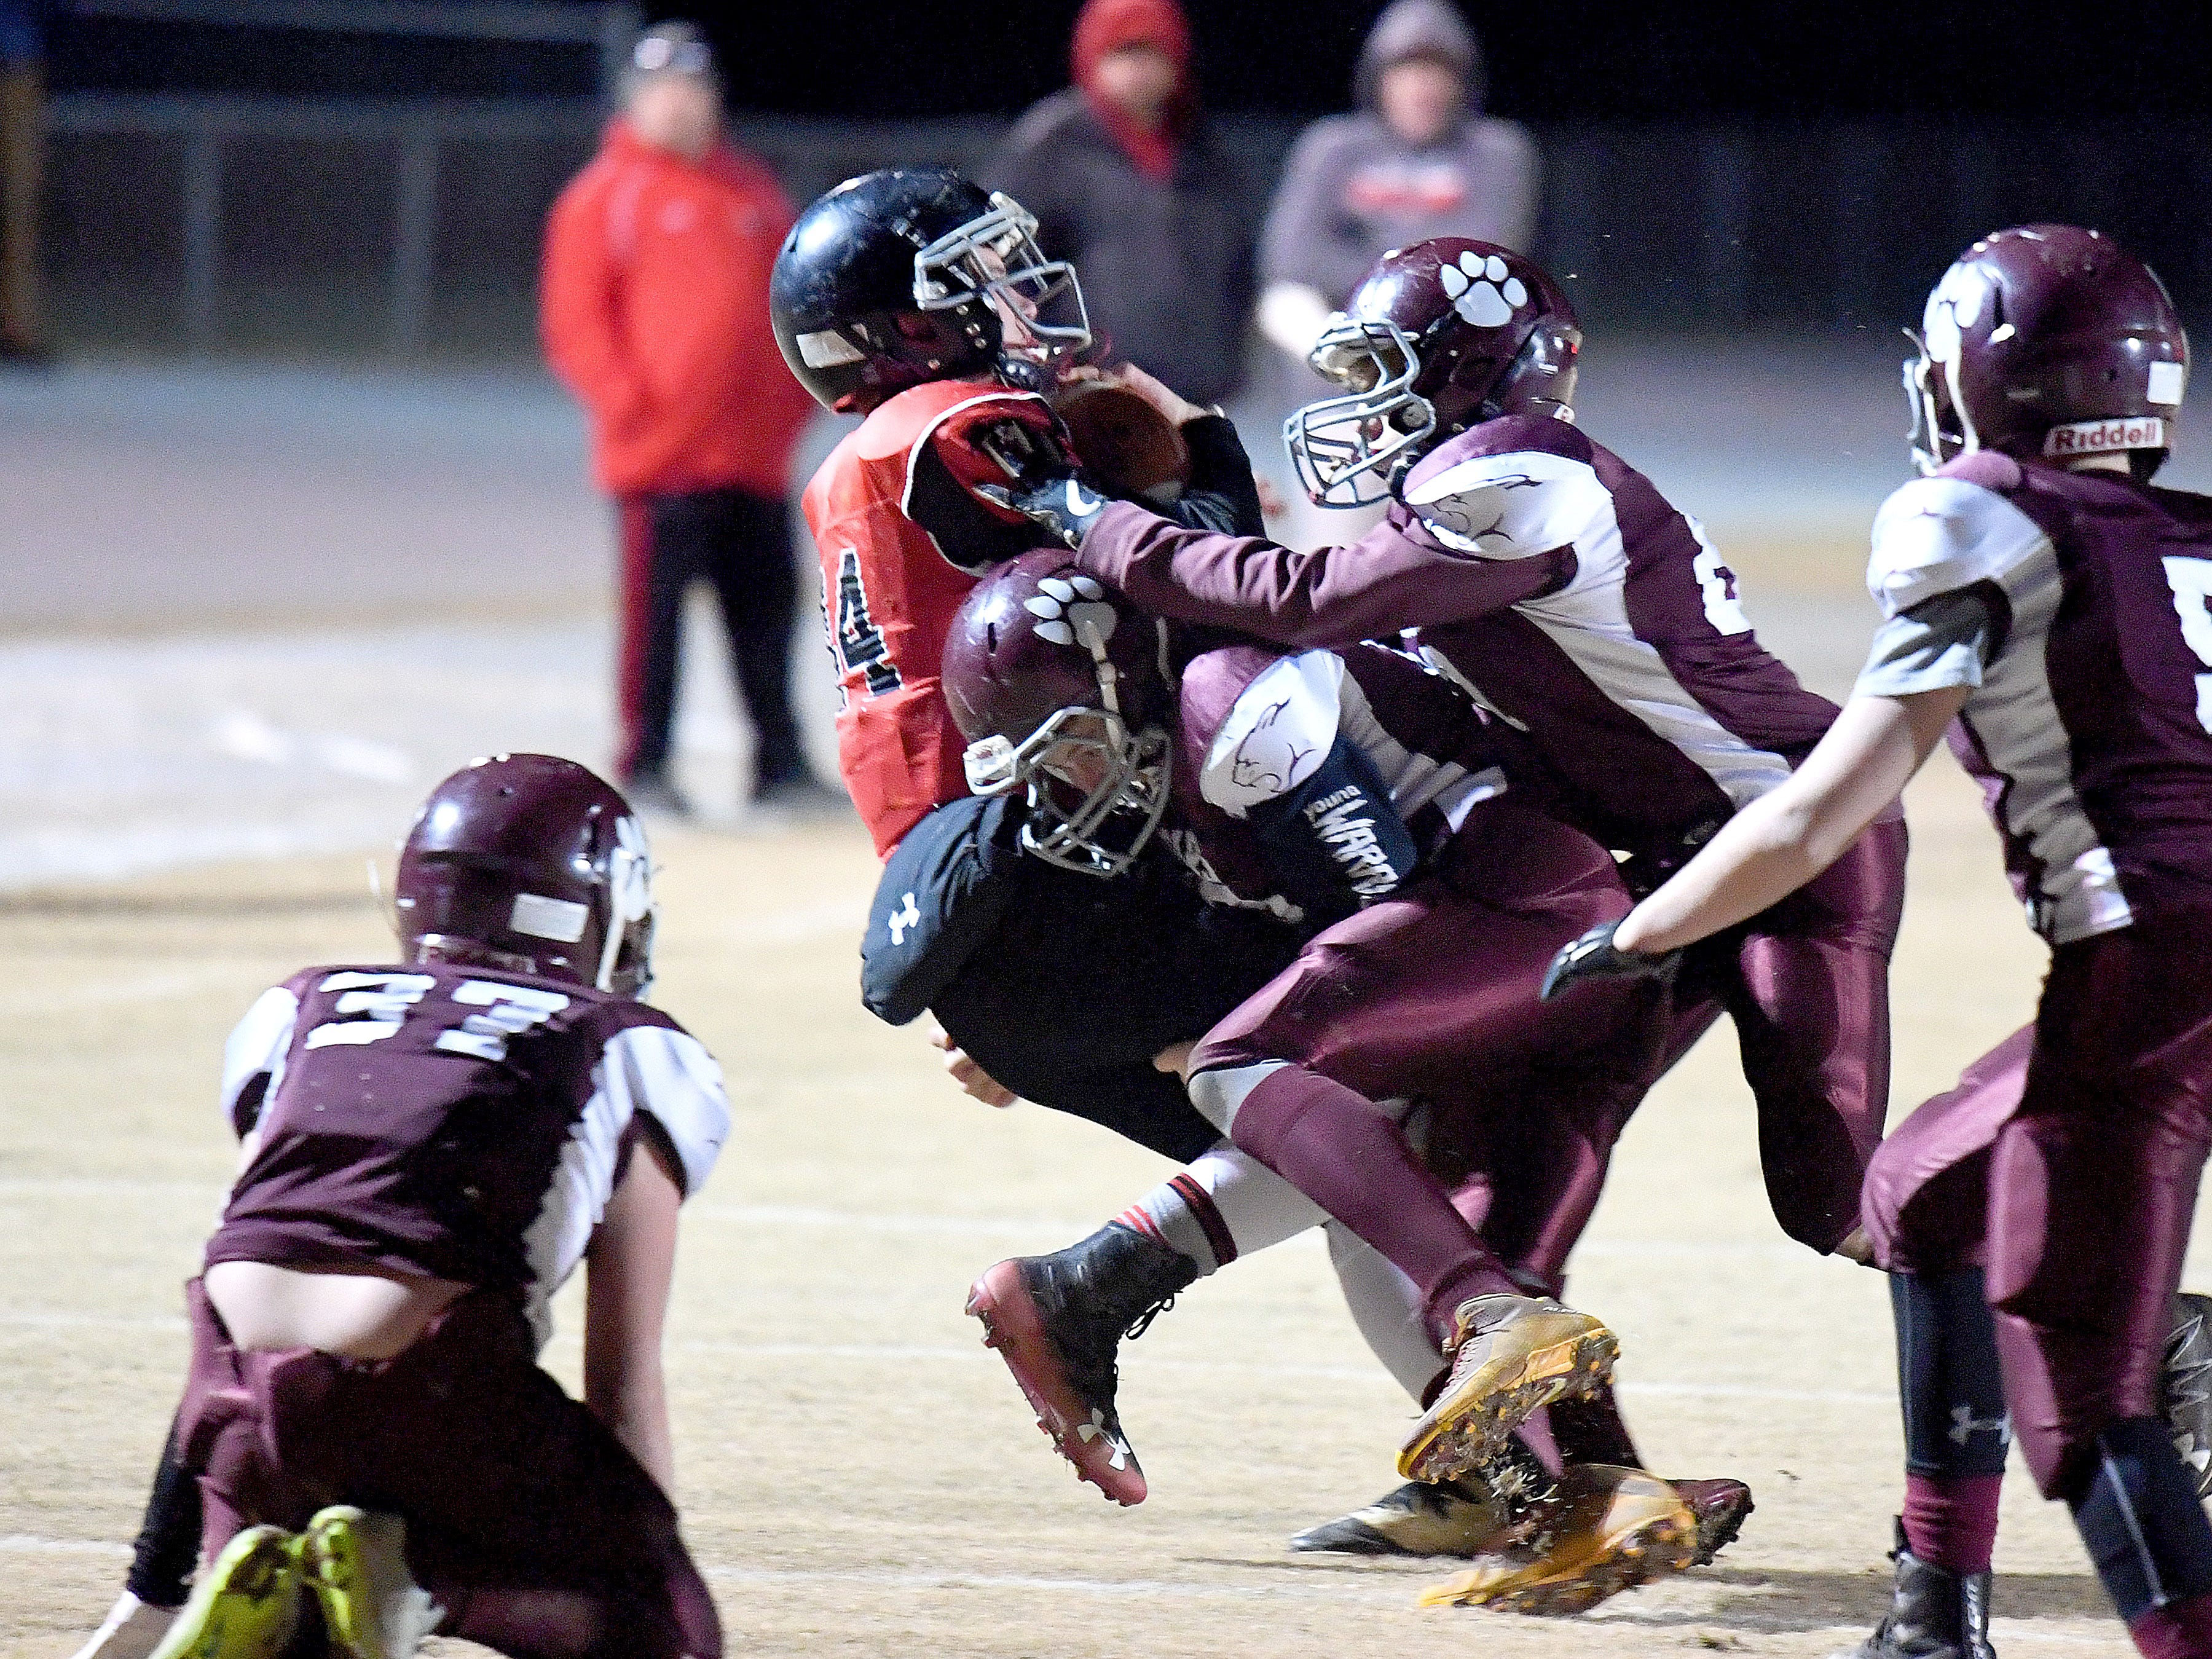 Riverheads' Cayden Cook Cash is brought down with the football by several Stuarts Draft defenders during the Augusta County Quarterback Club Seniors Super Bowl in Fishersville on Sunday, Nov. 11, 2018.  RIverheads defeats Stuarts Draft, 38-6.